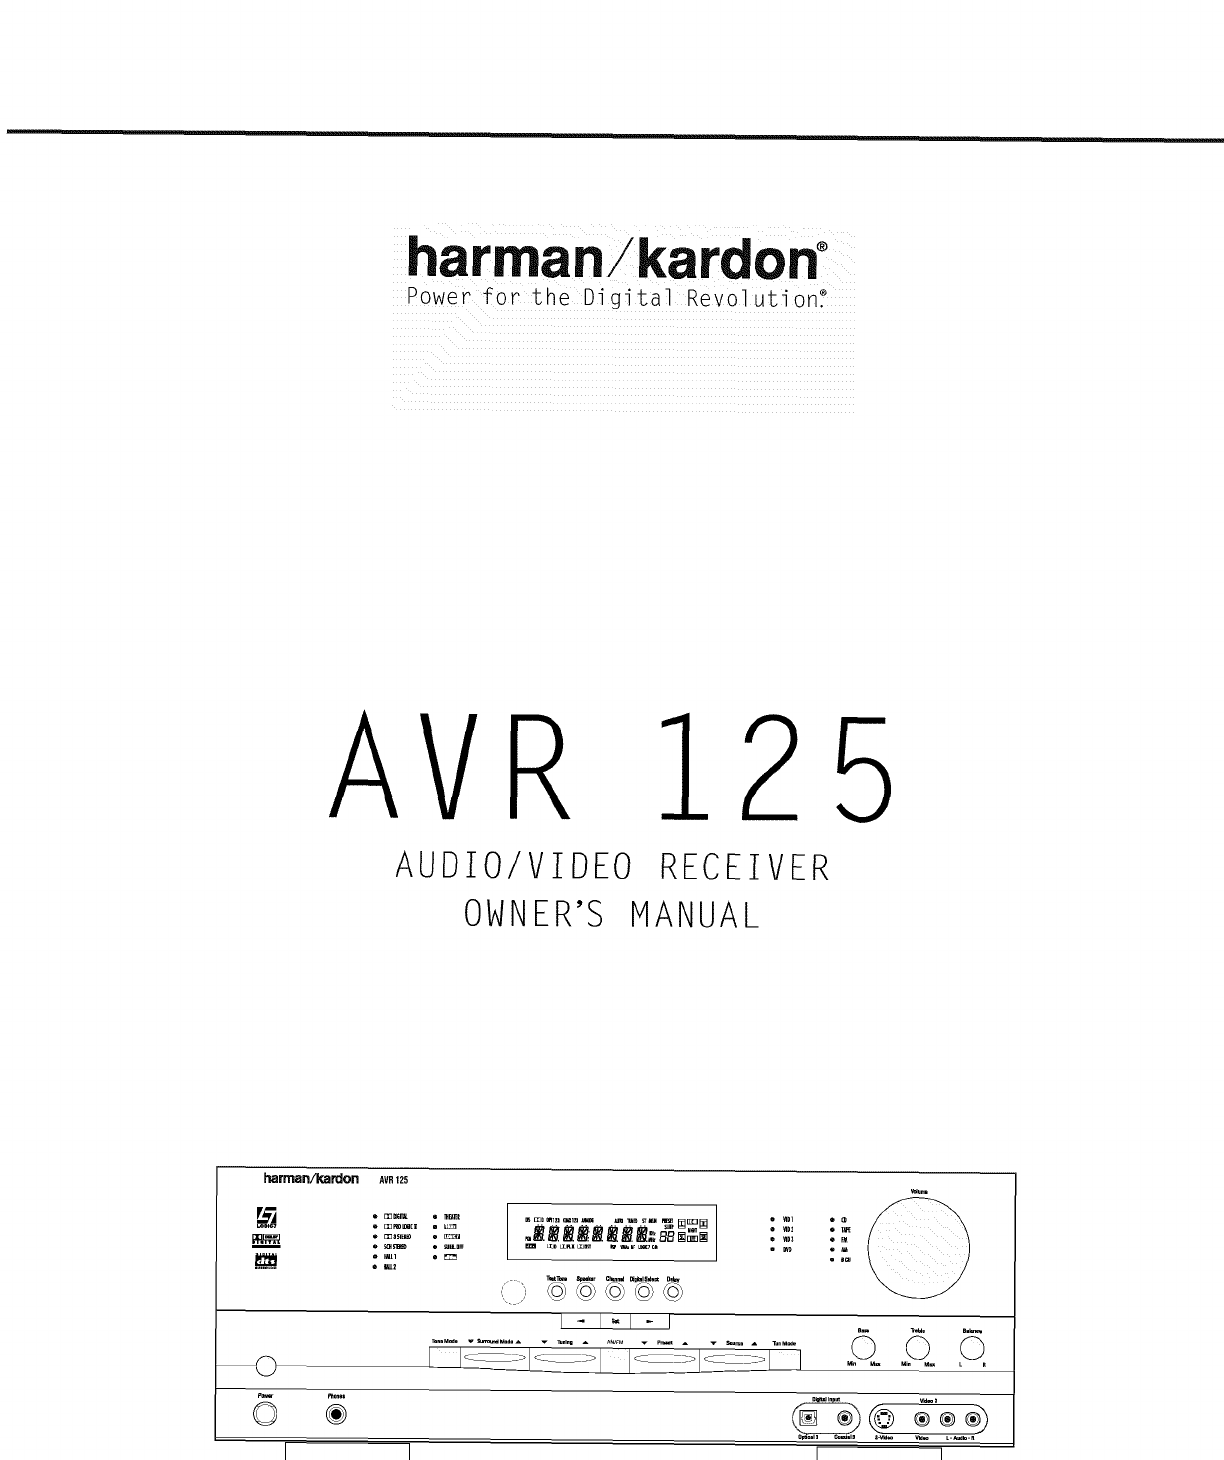 harman kardon avr125 user manual receiver manuals and guides l0208011 rh usermanual wiki